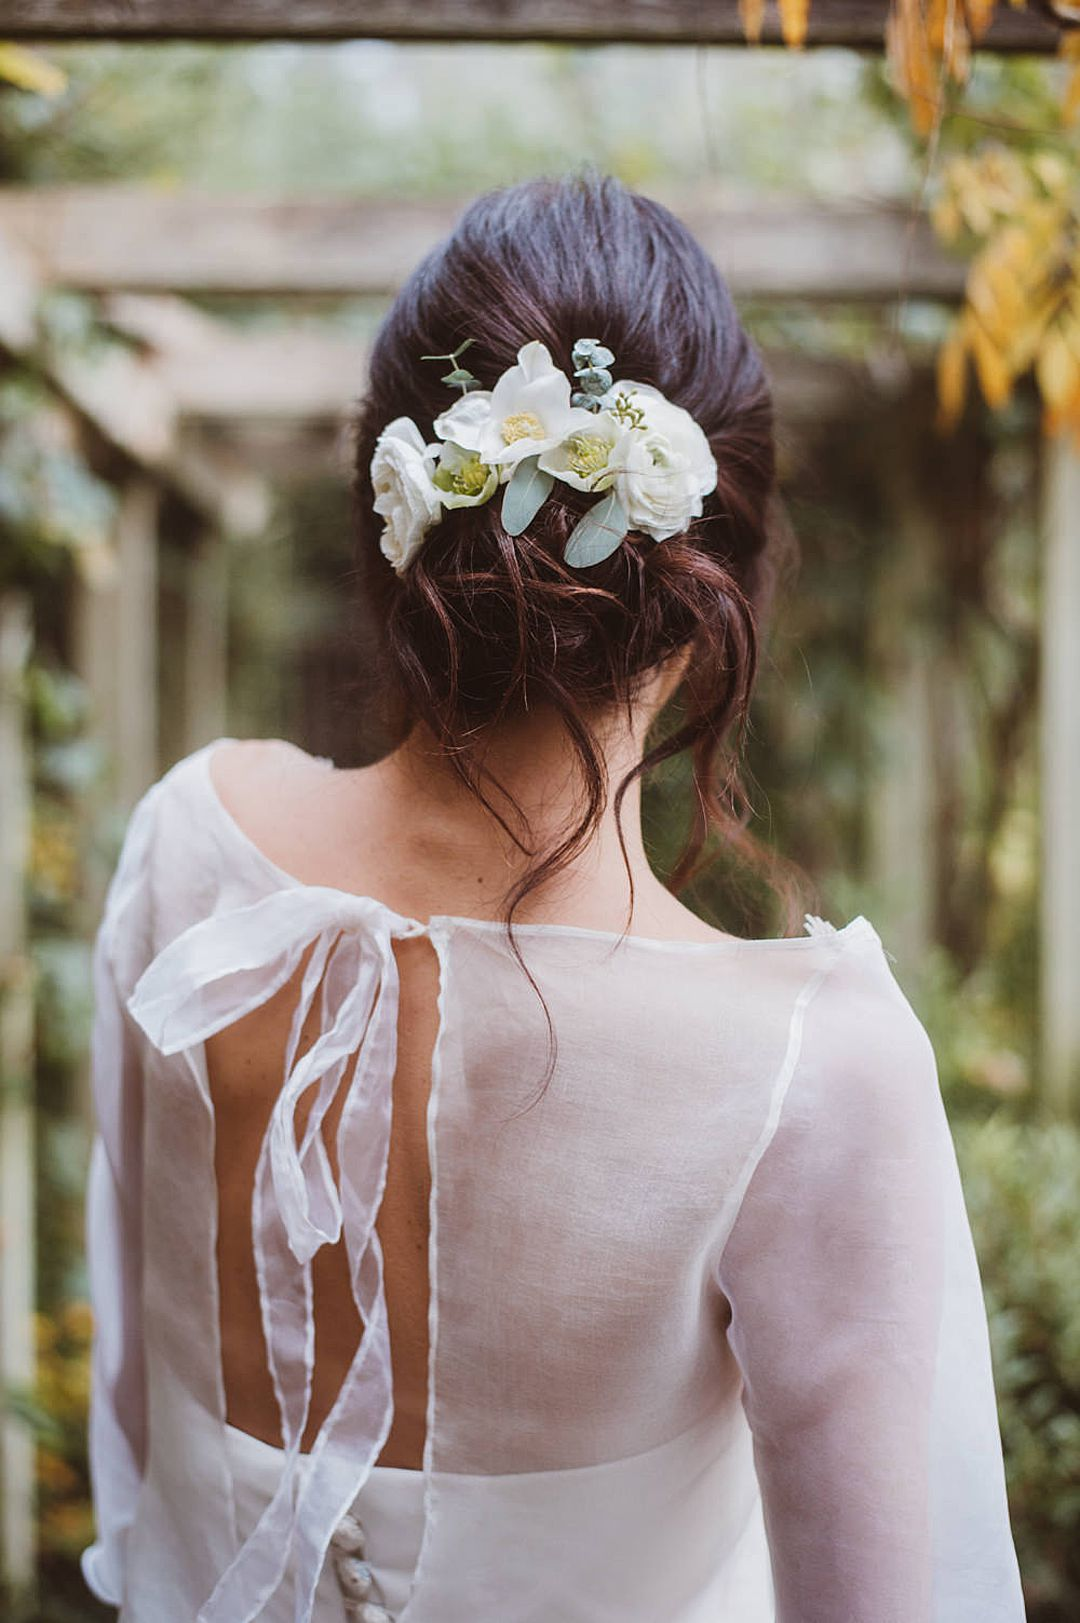 Boho style wedding hair up do with white flowers. Bride wearing bridal bodice with a silk separate top with bird embroidery by Jessica Turner Designs